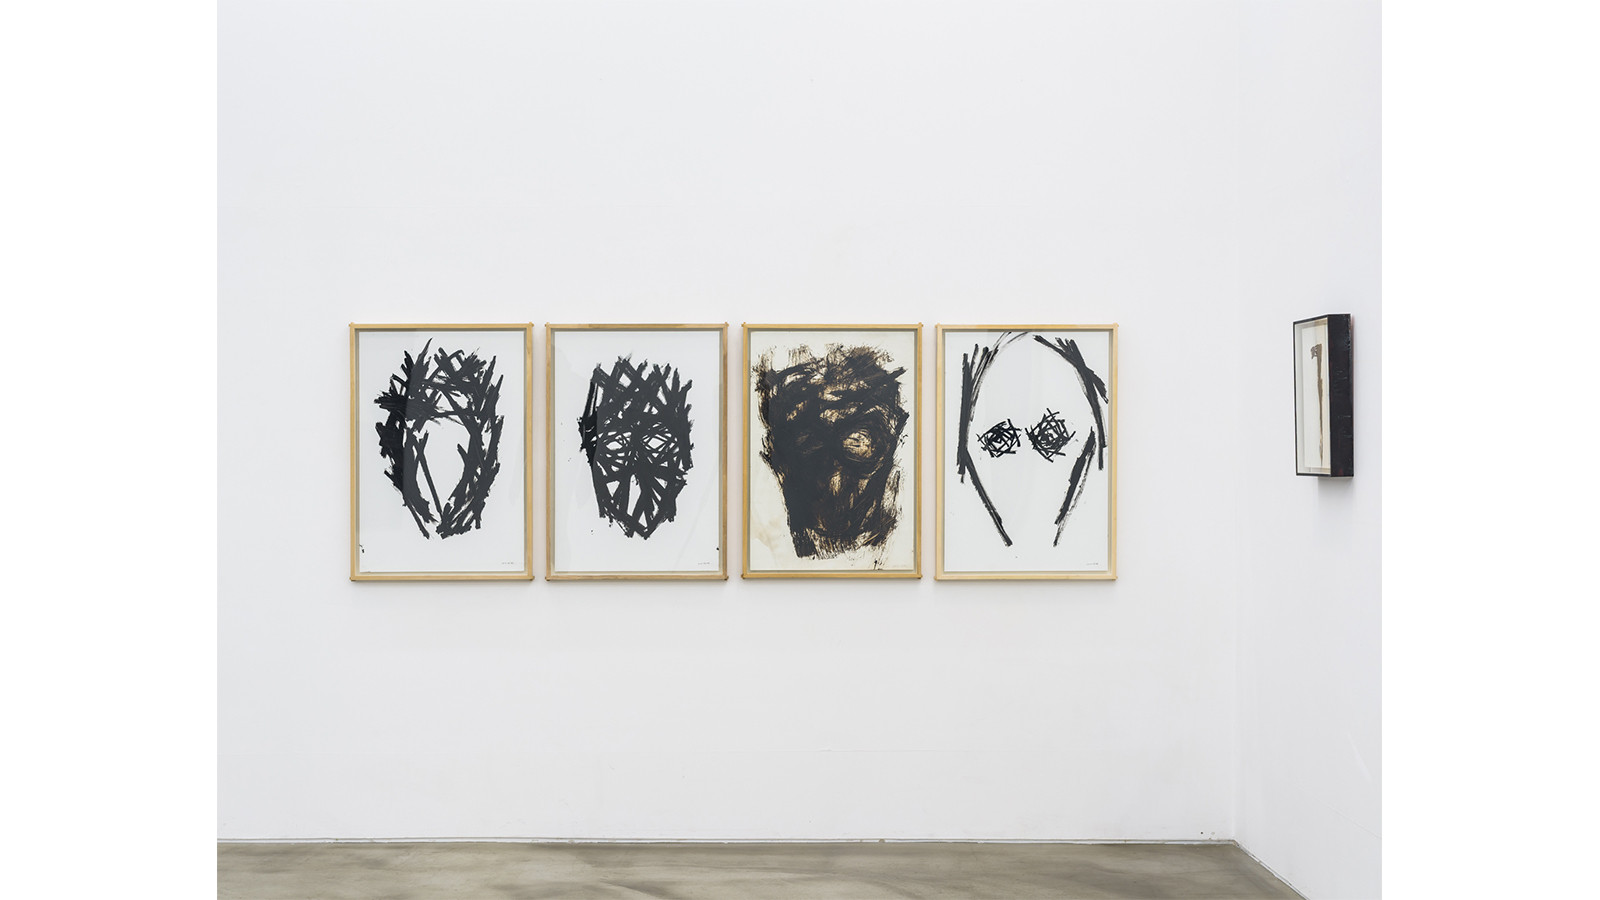 Drawing, 2014, 2014, 2009, 2014, 1997, col tar, oil bar (left to right)